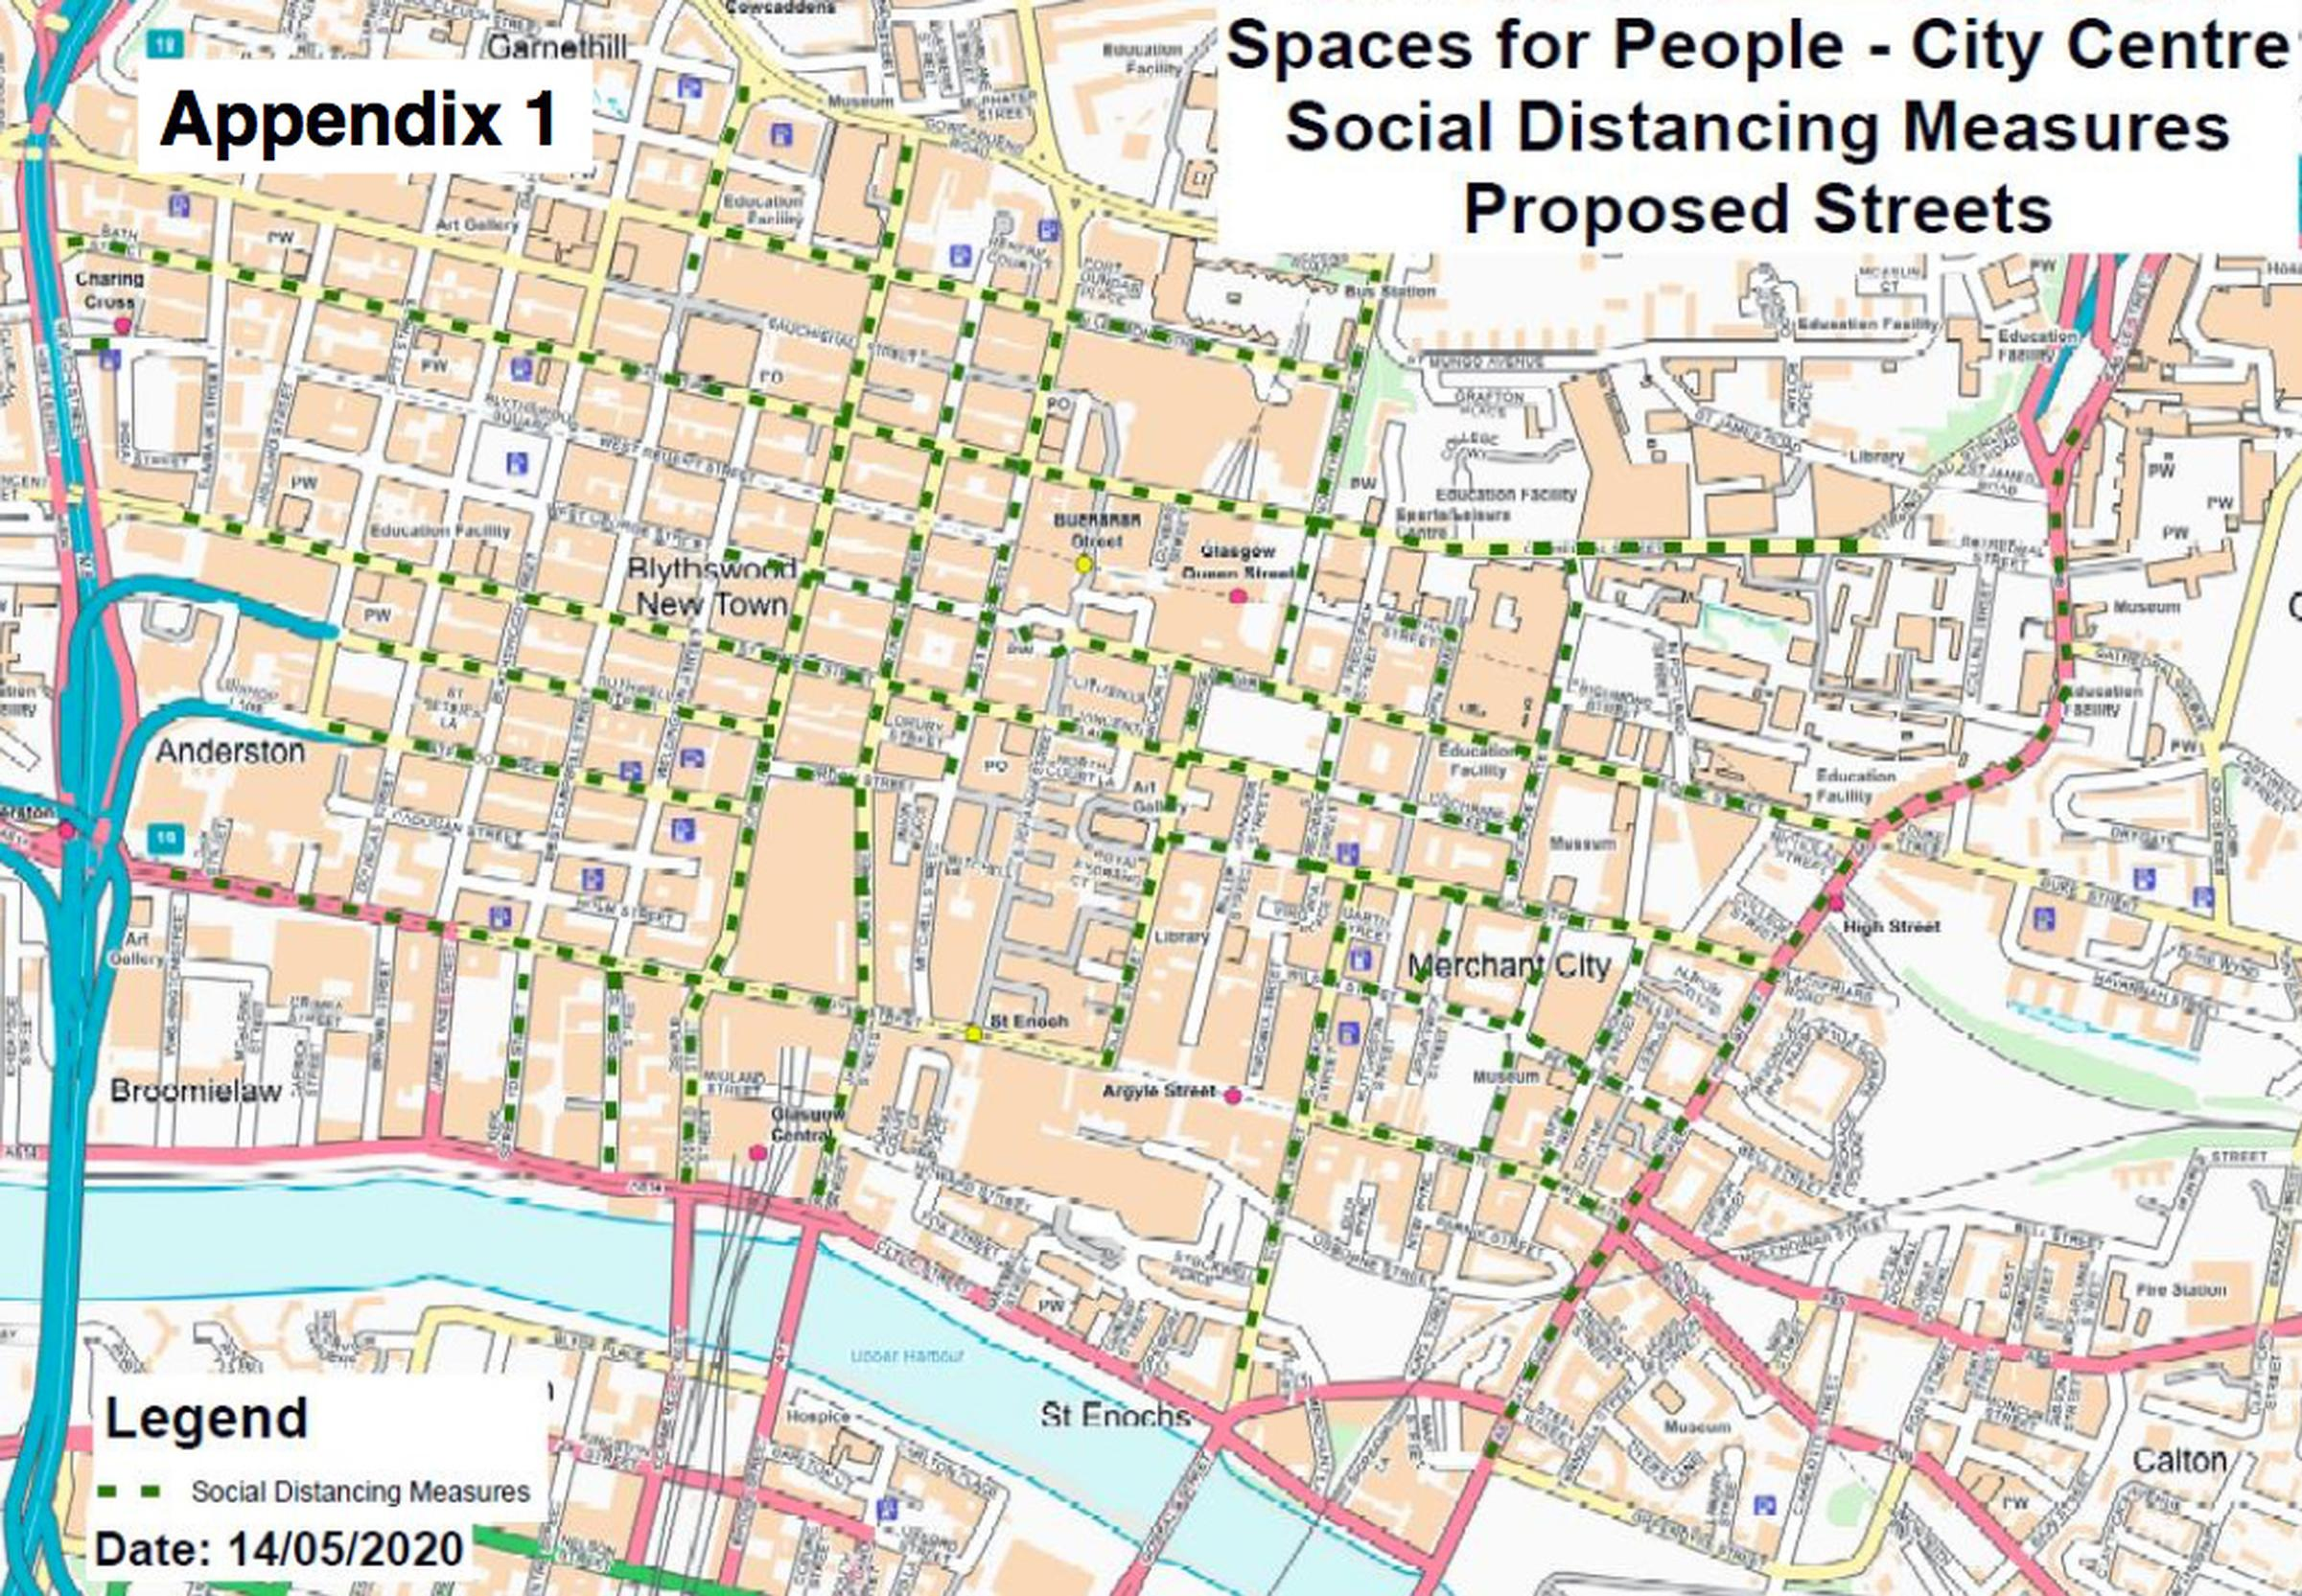 Glasgow's city centre: social distancing measures will be installed on the green and yellow streets